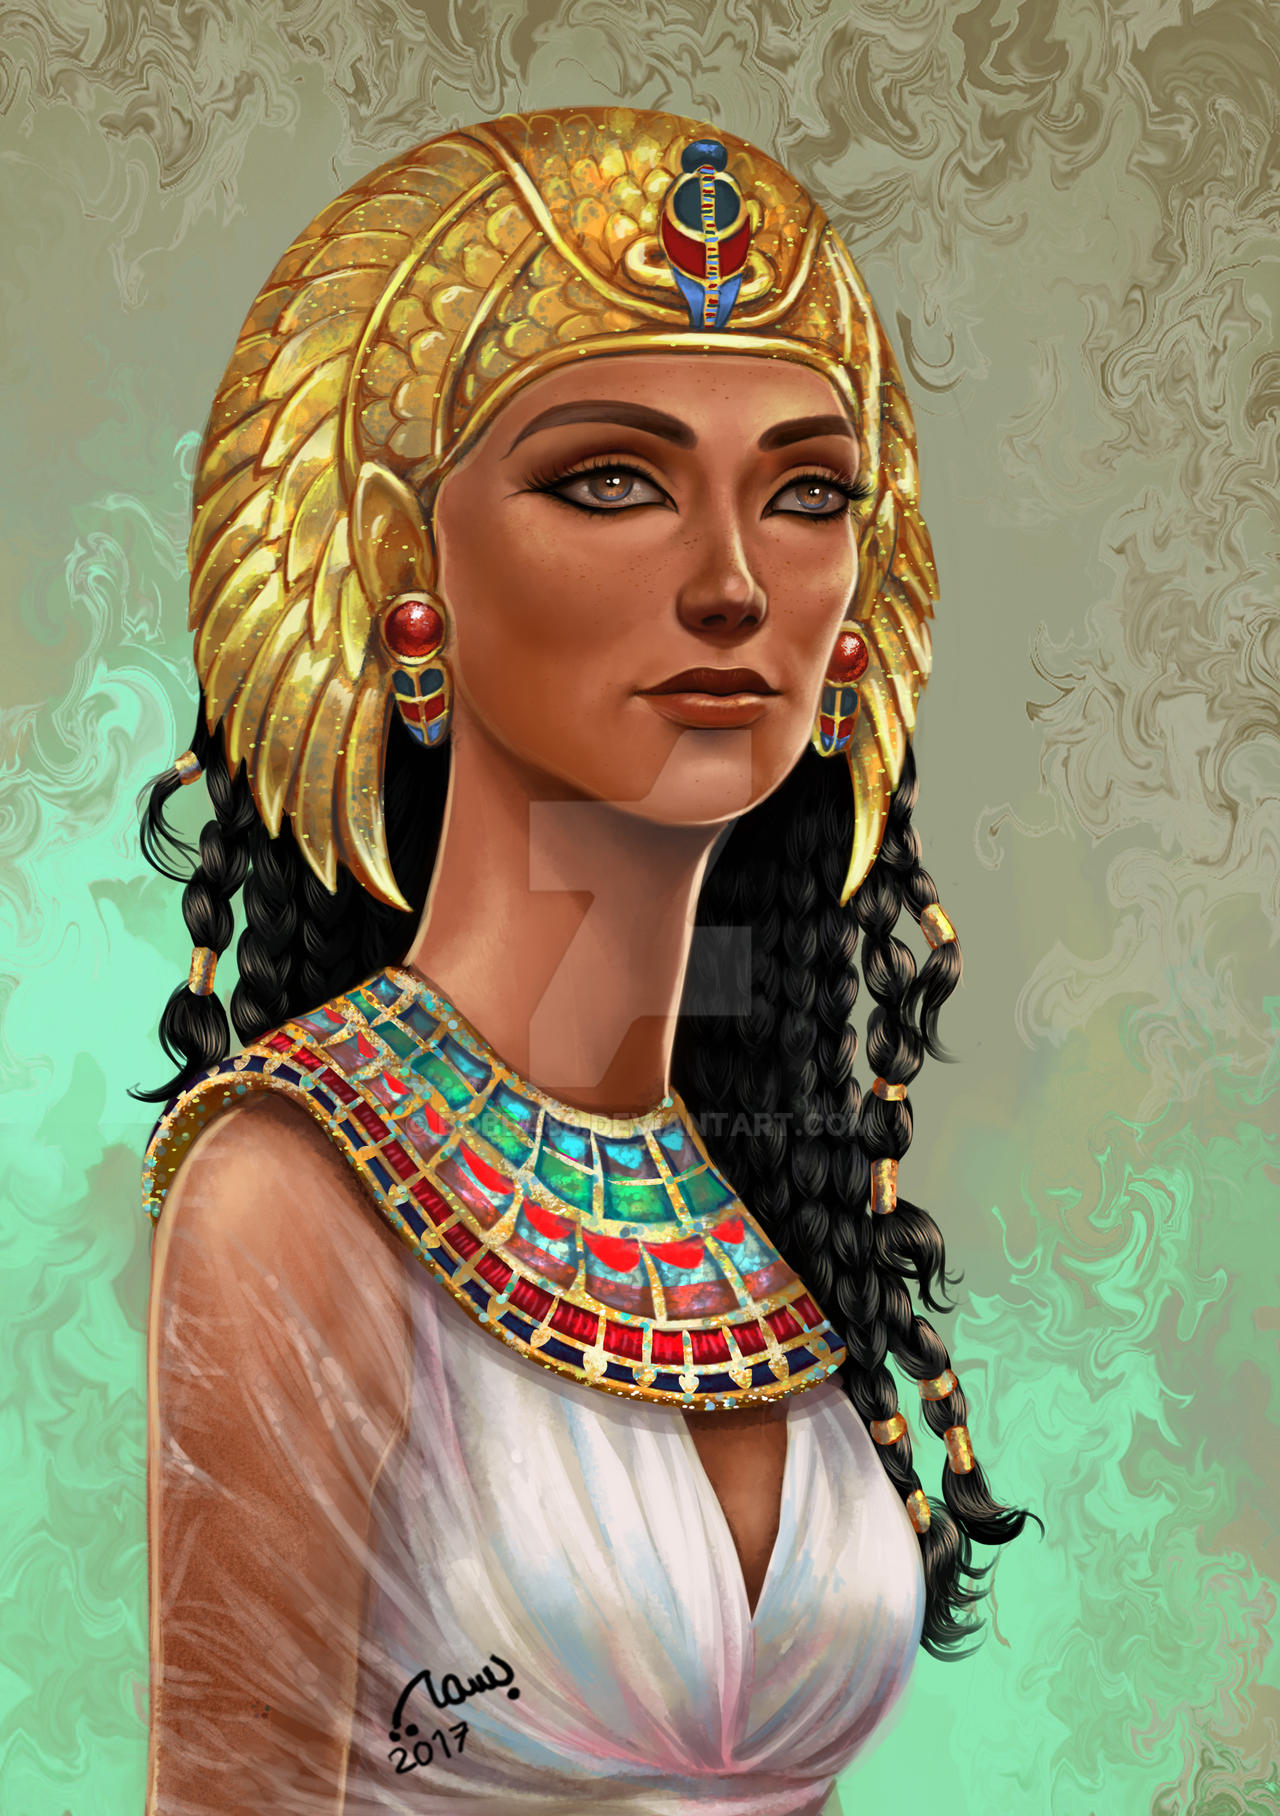 egyptian queen drawing - photo #36